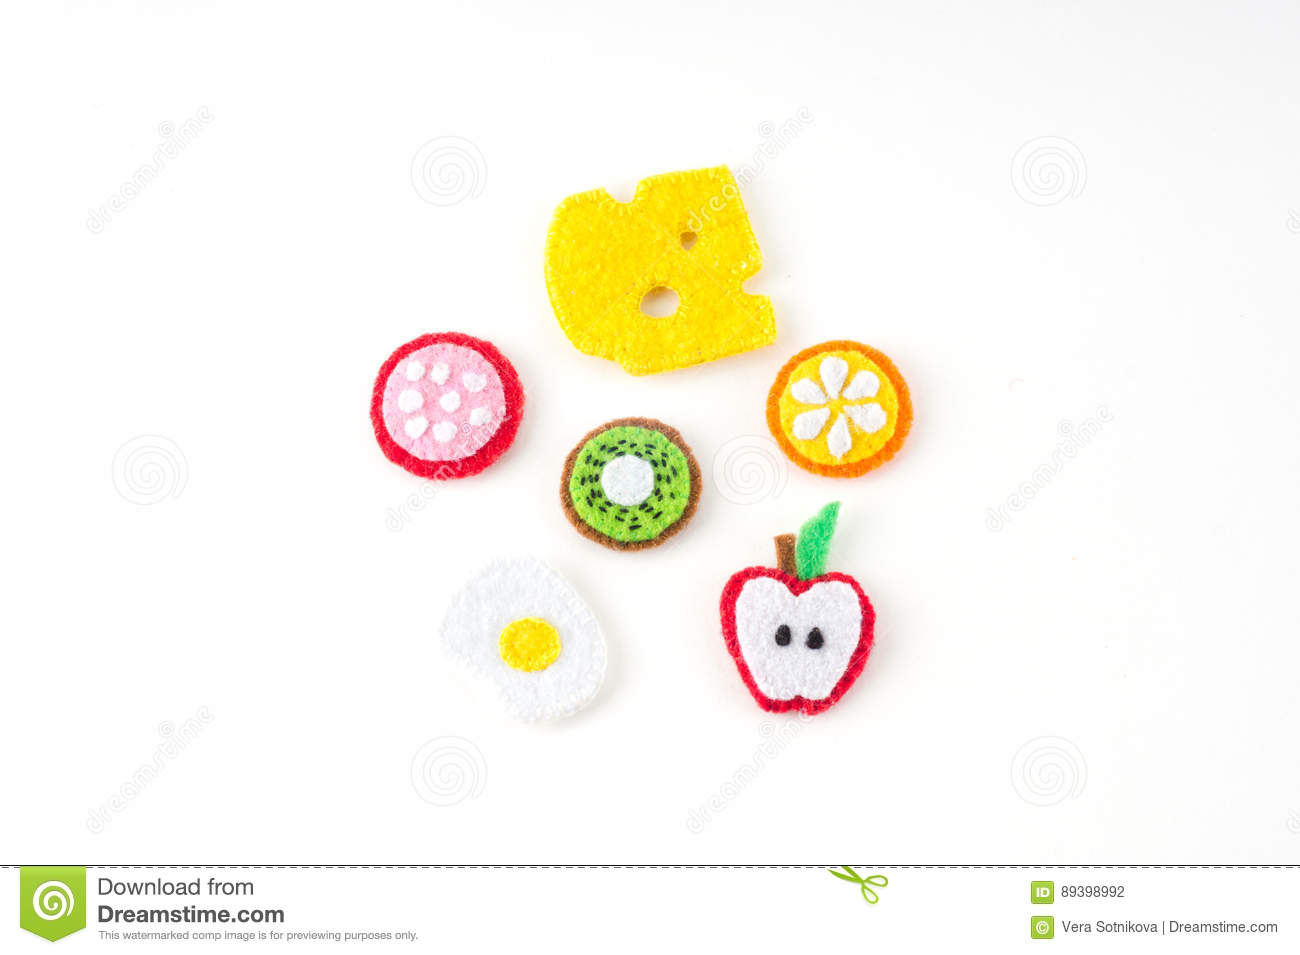 Handmade toy in the form of fruits and food made of felt . Close